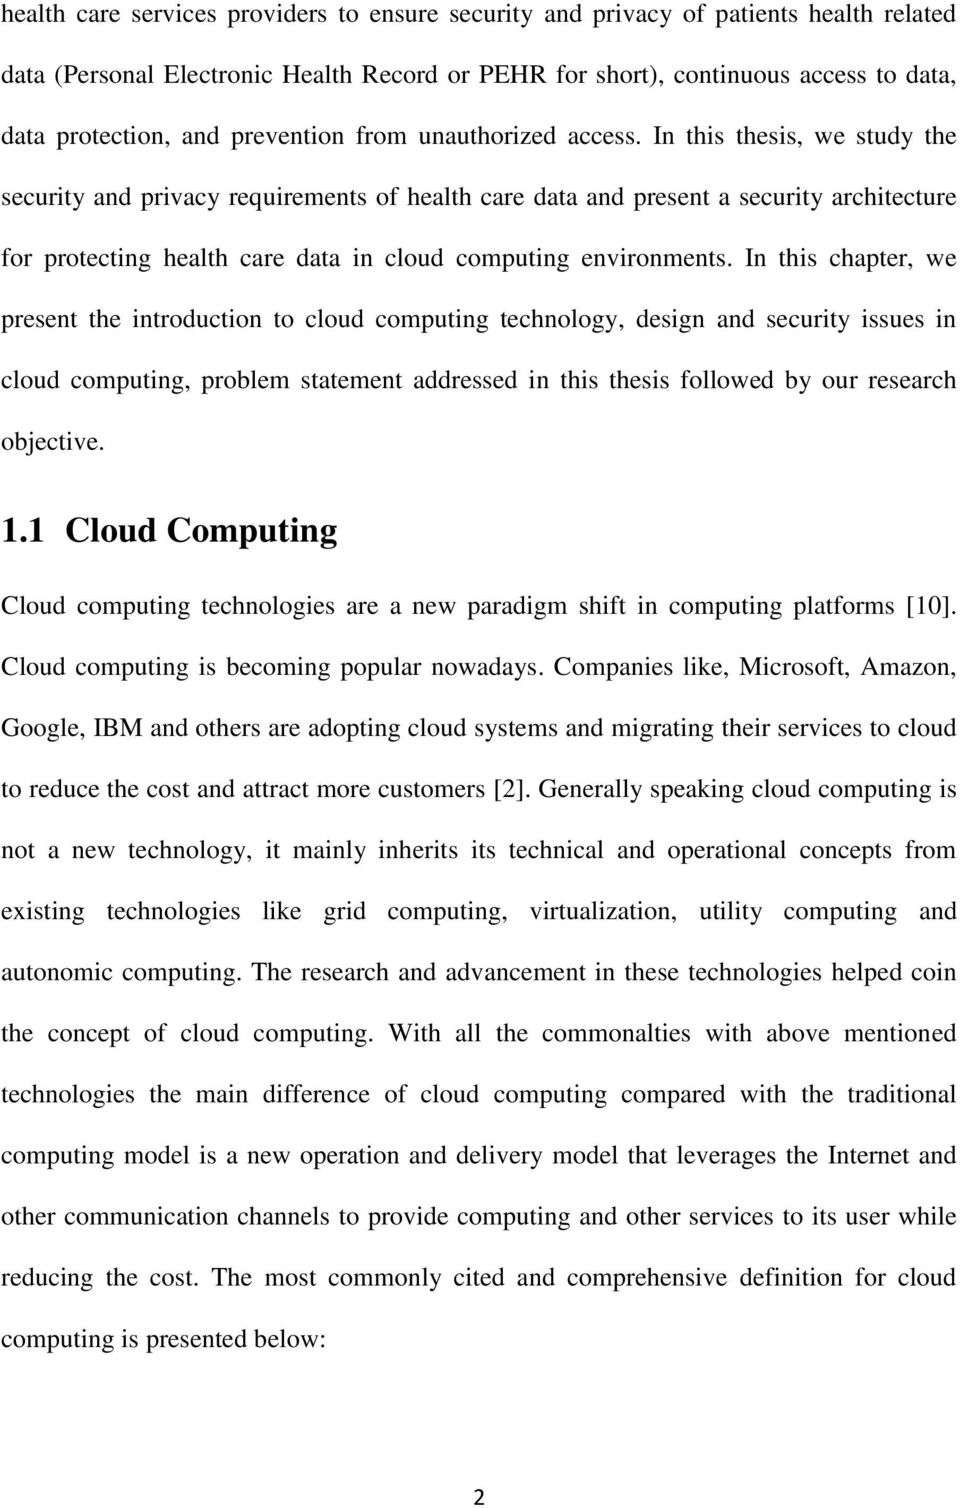 In this thesis, we study the security and privacy requirements of health care data and present a security architecture for protecting health care data in cloud computing environments.